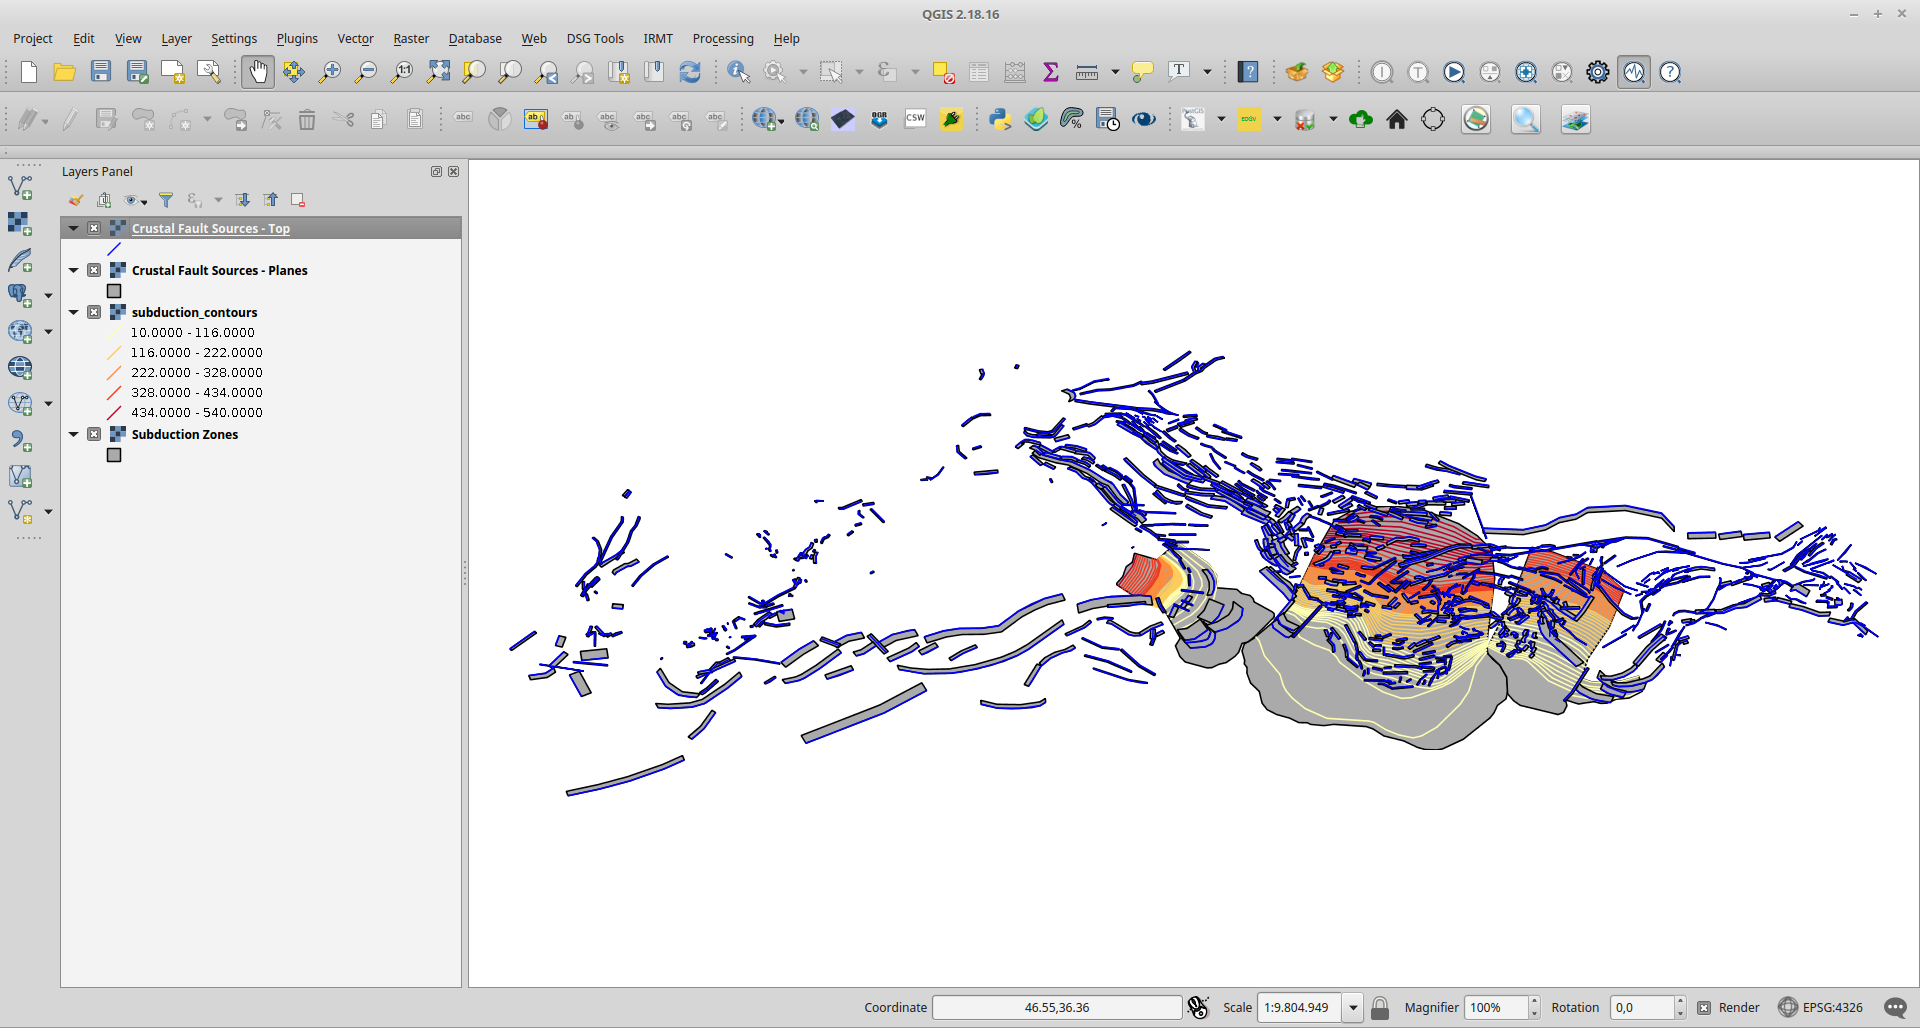 EDSF on QGis canvas